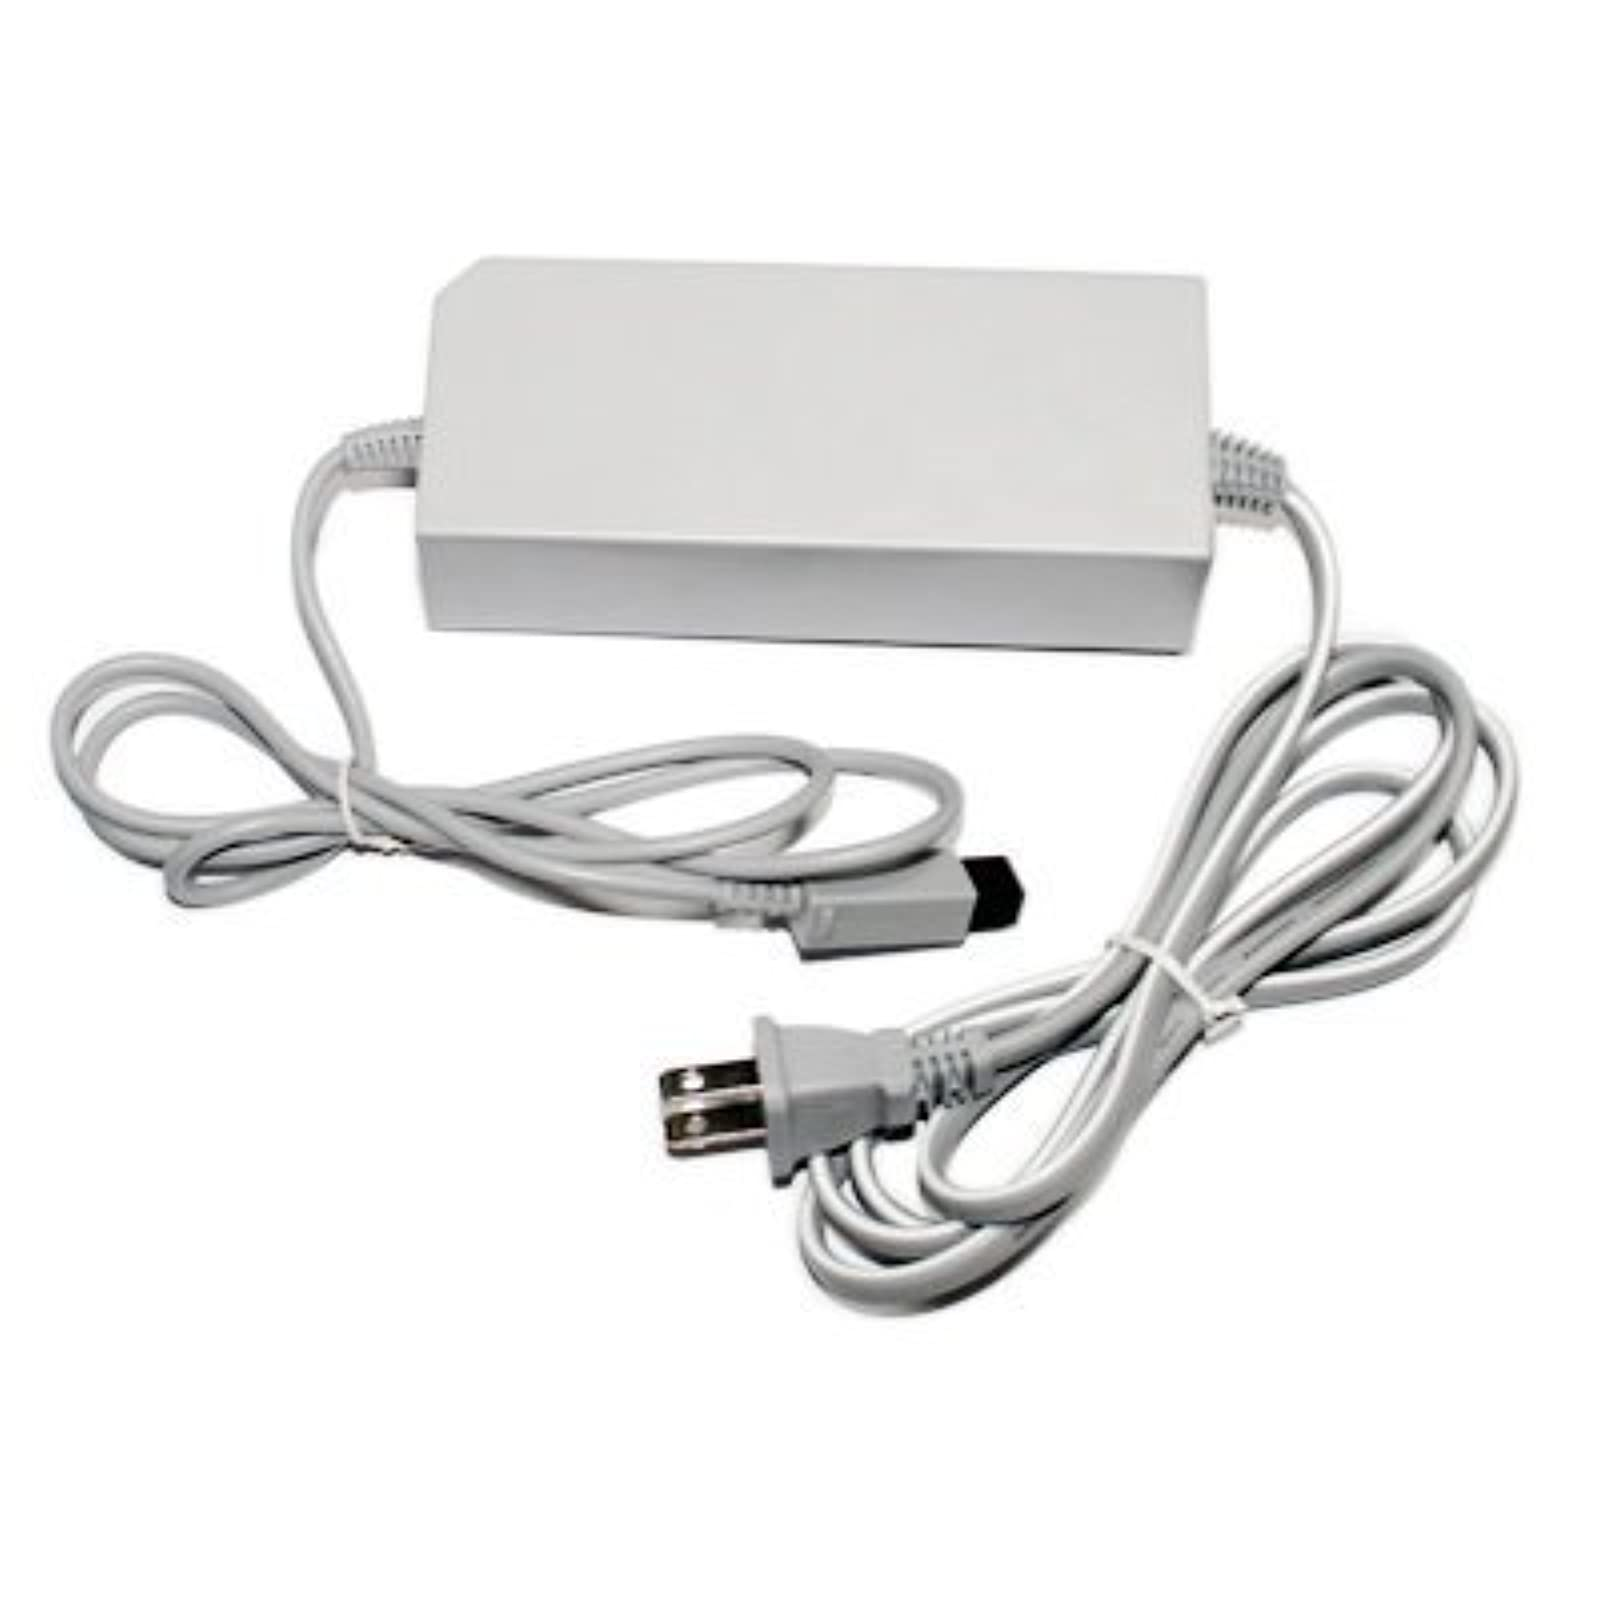 AC Adapter Power Cord Cable All Supply For Nintendo Wii